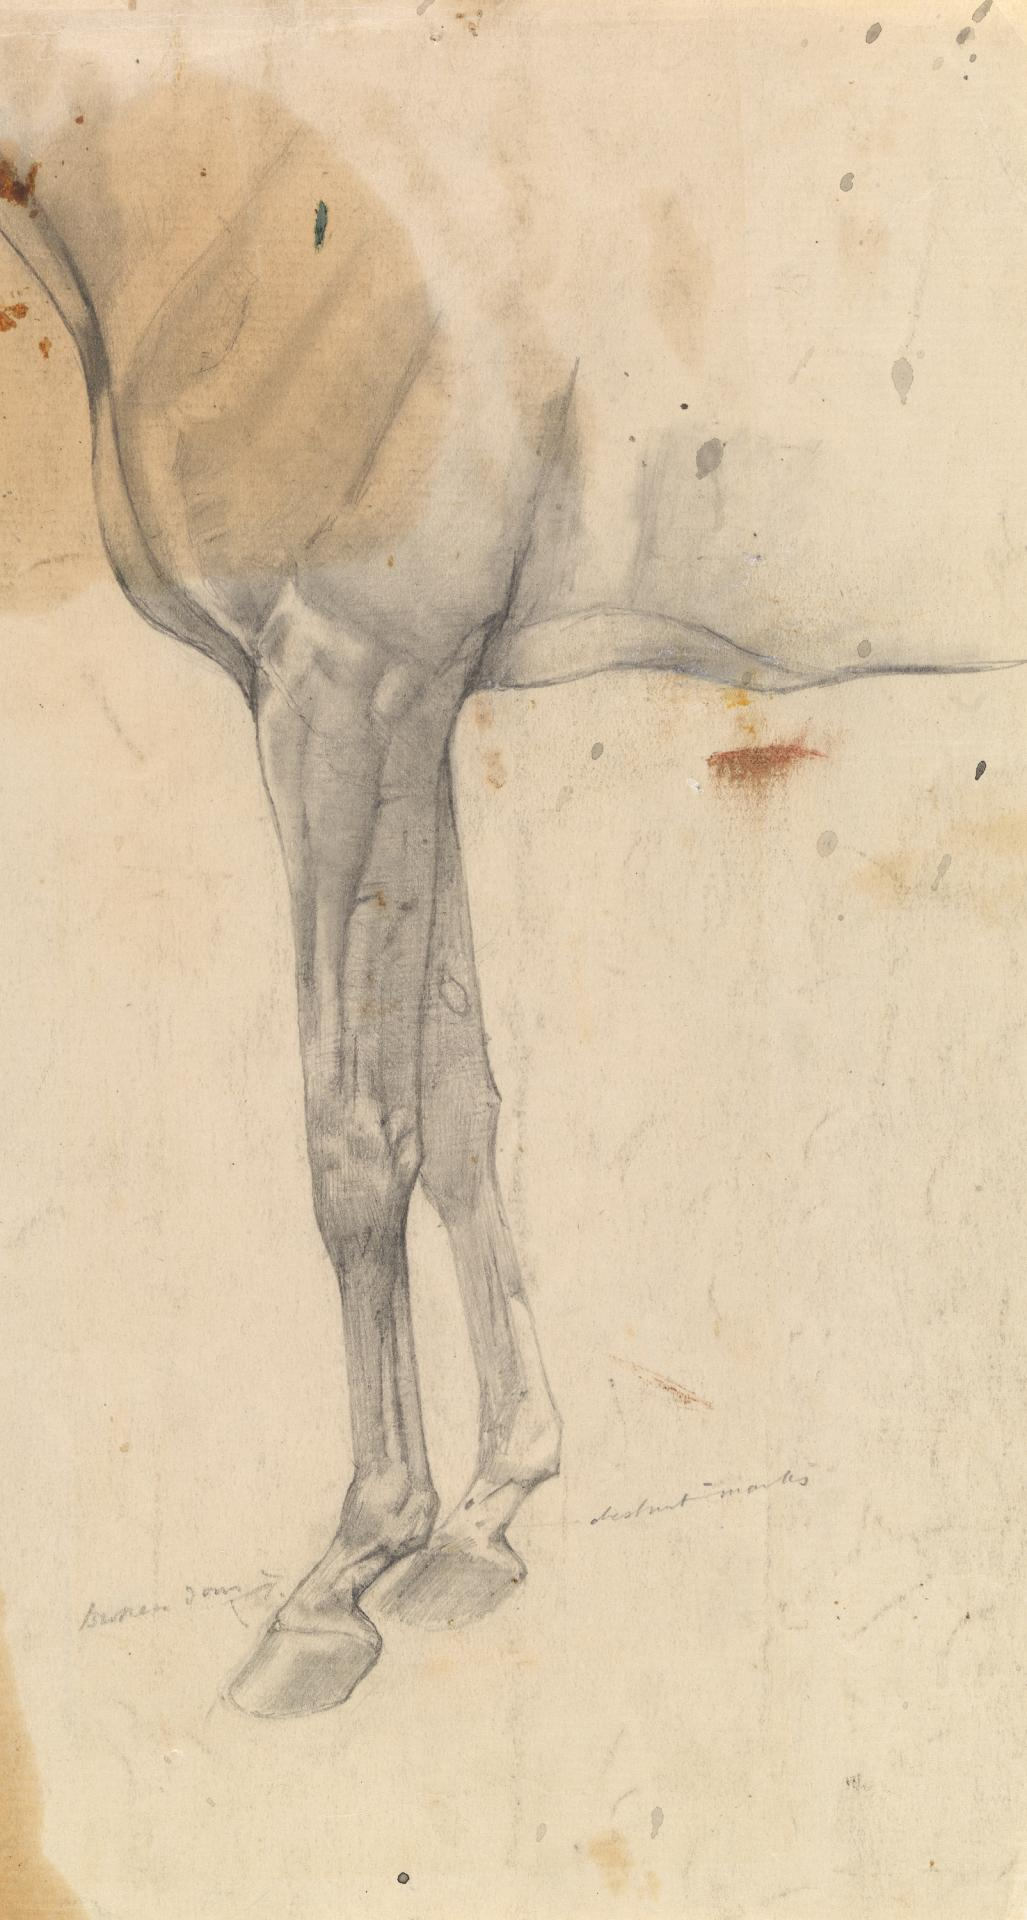 Study of the foreleg of a horse Eurythmic